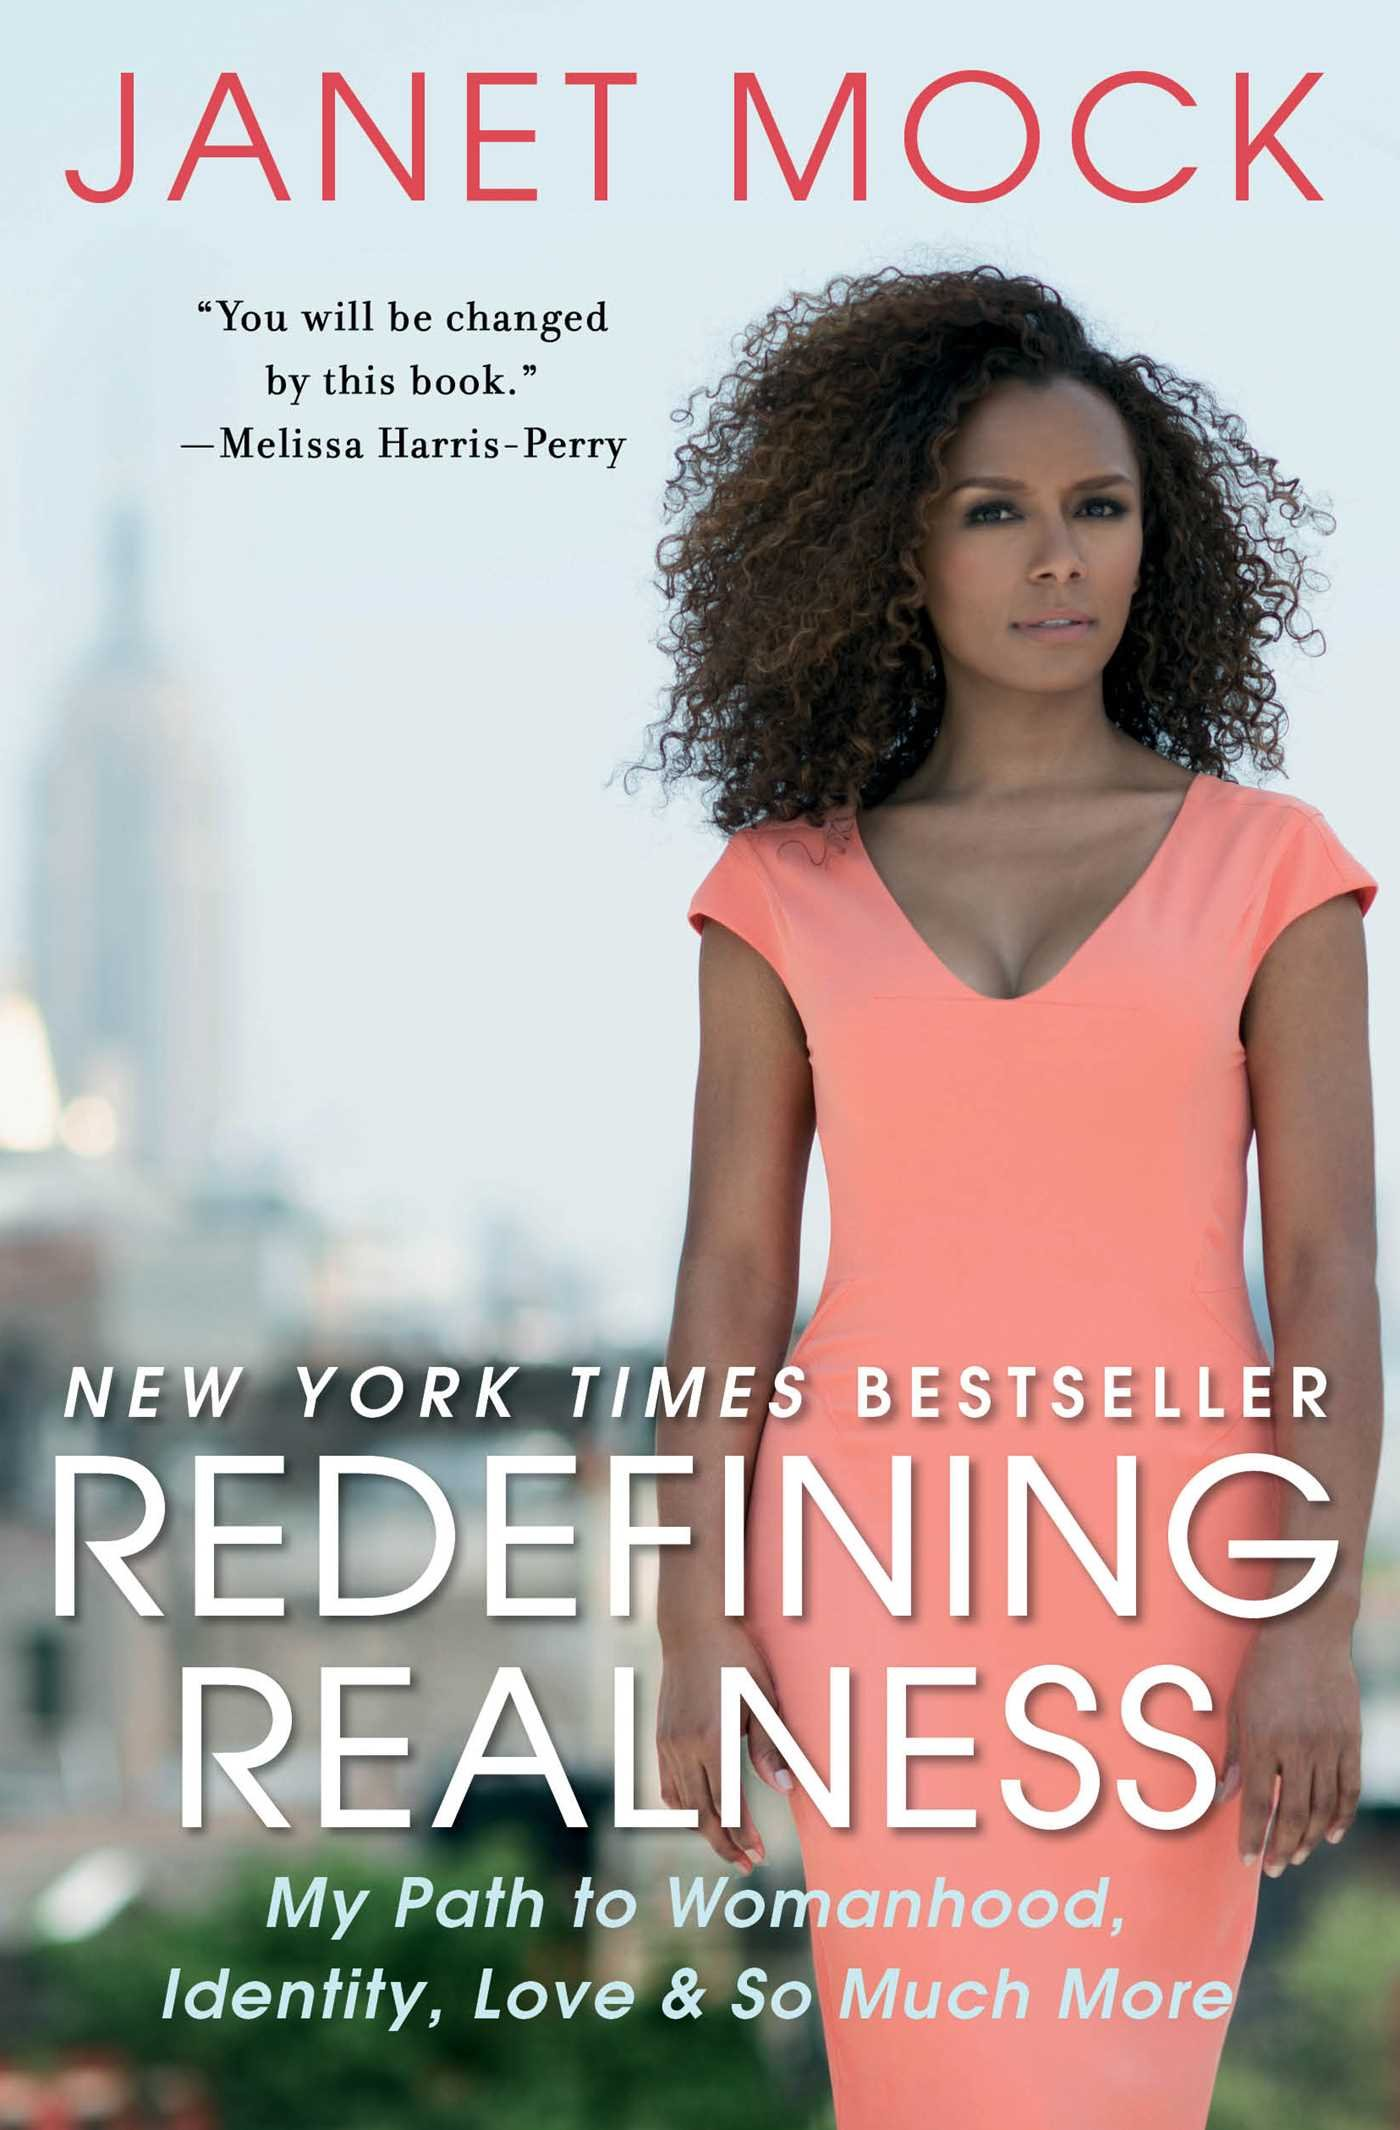 Redefining Realness: My Path to Womanhood, Identity, Love, & So Much More  by Janet Mock